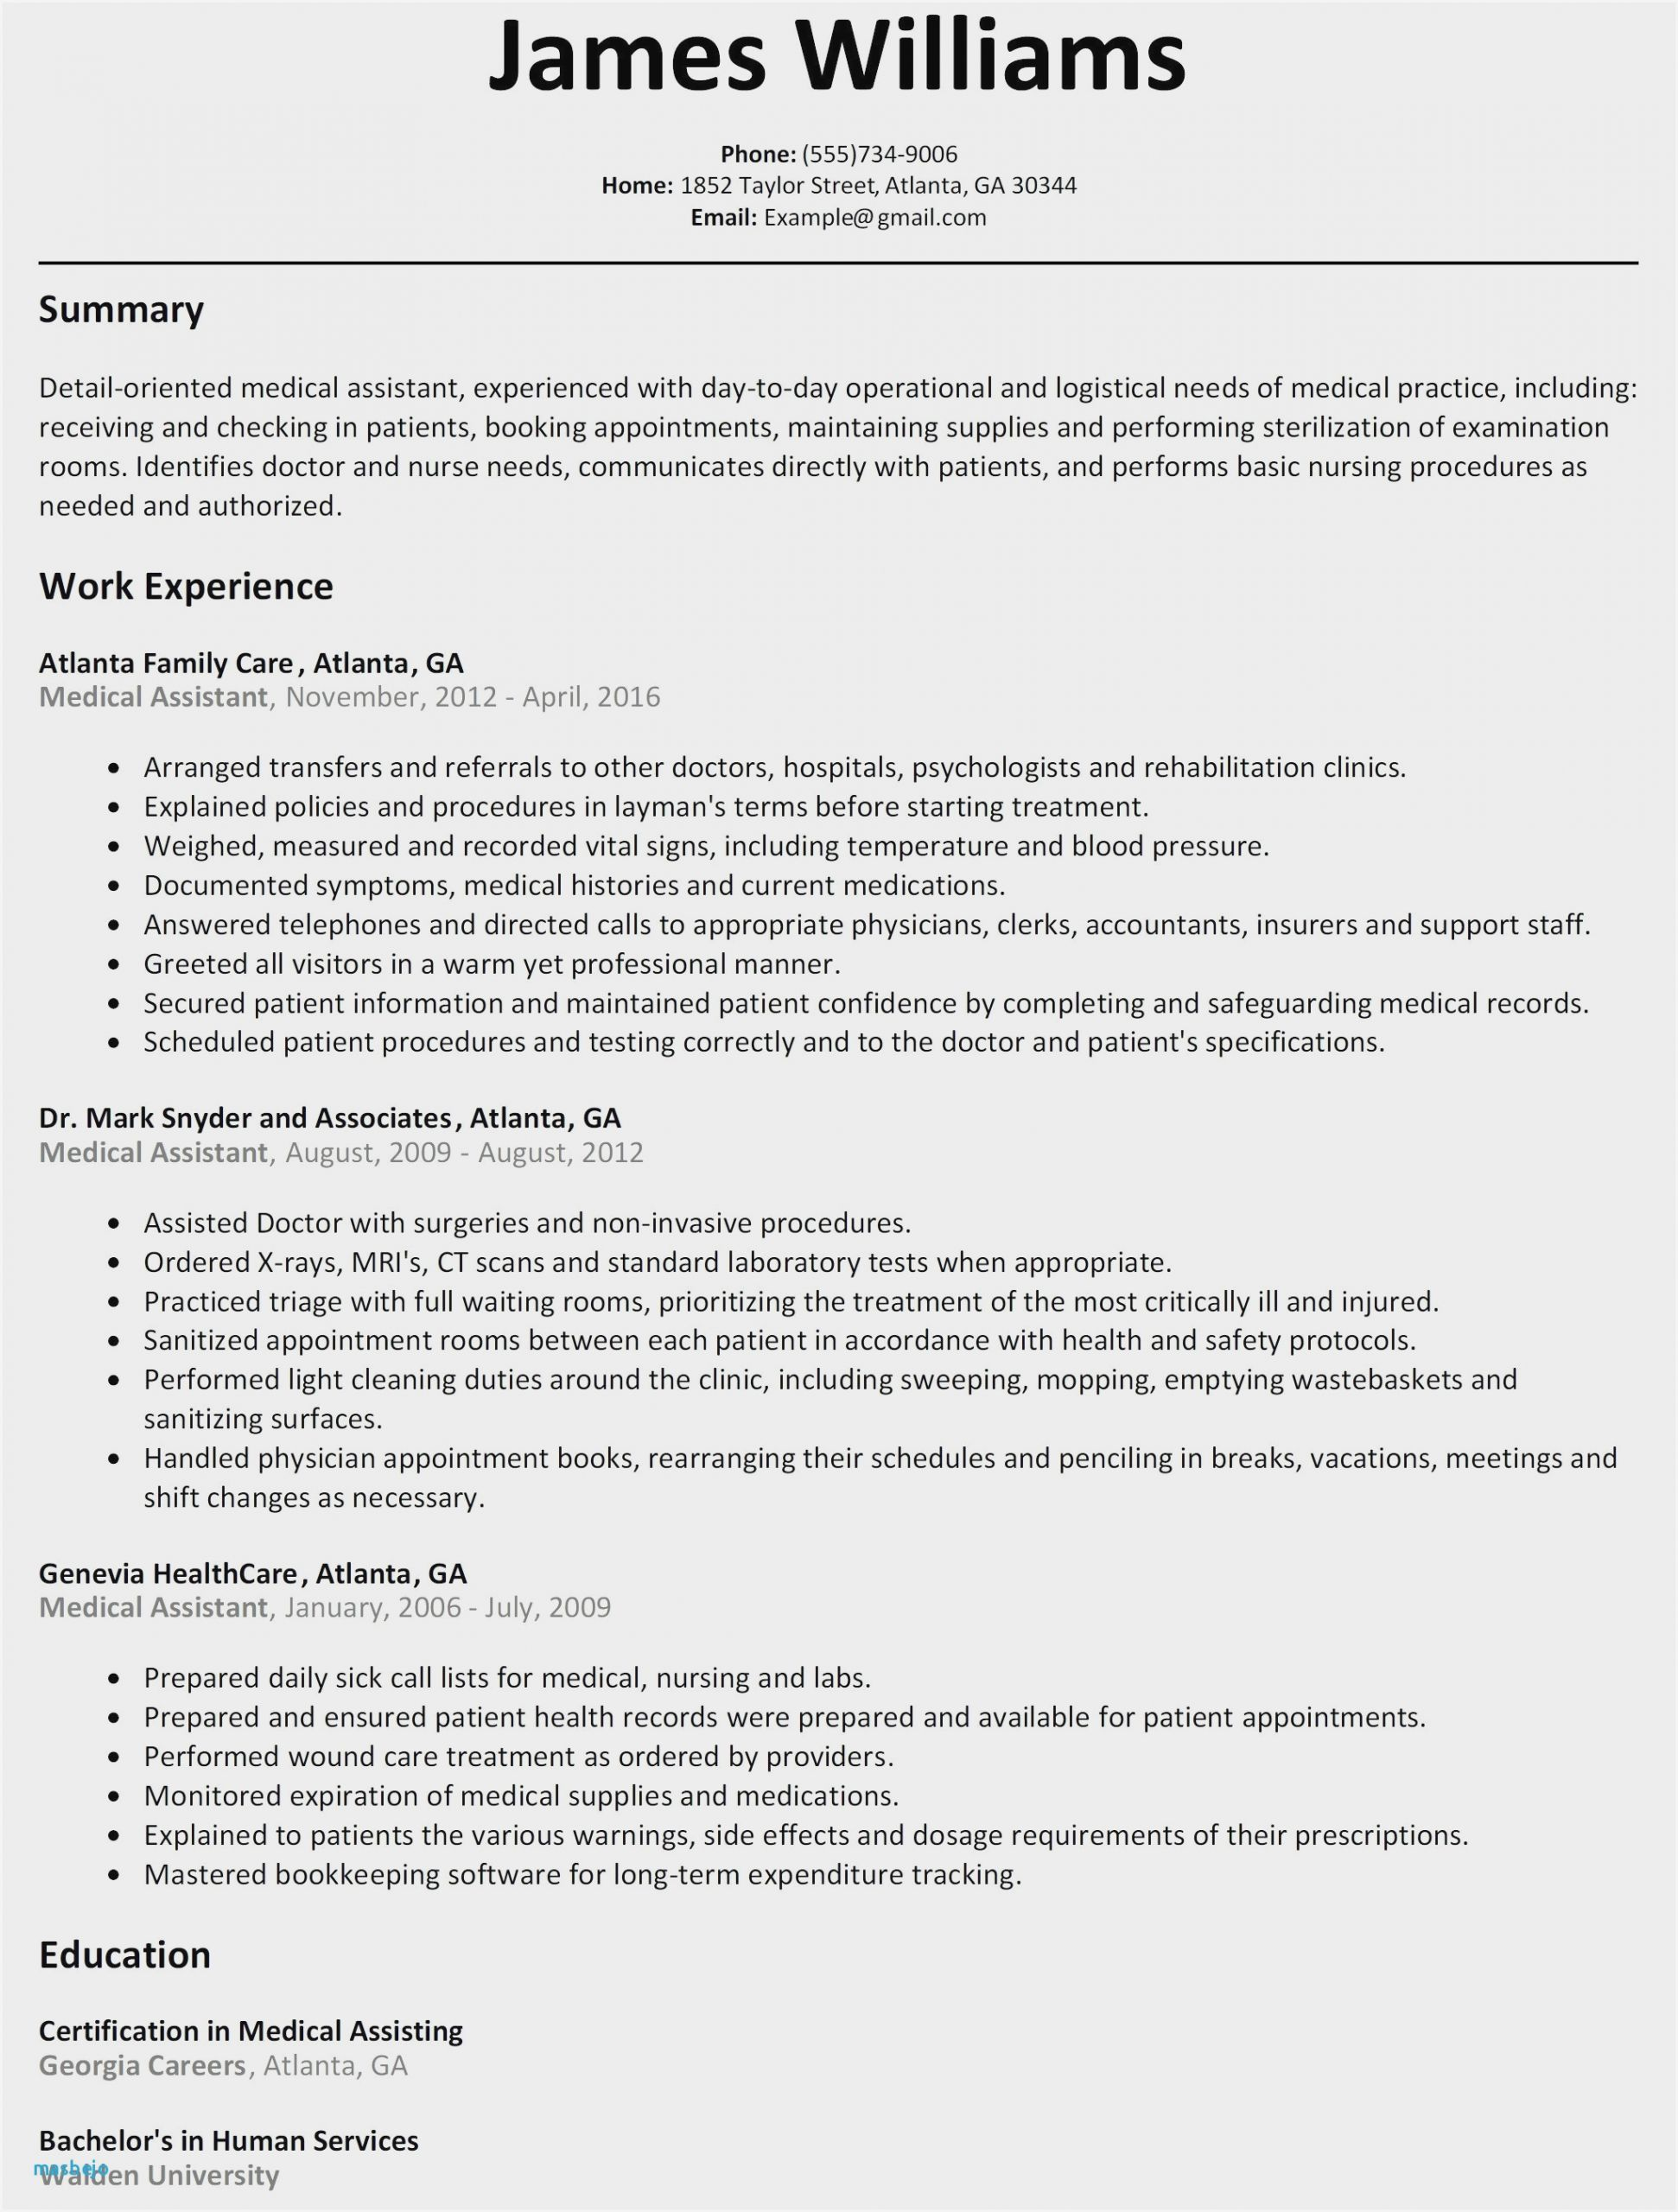 resume objective statement examples nursing sample healthcare scaled free template with Resume Healthcare Resume Objective